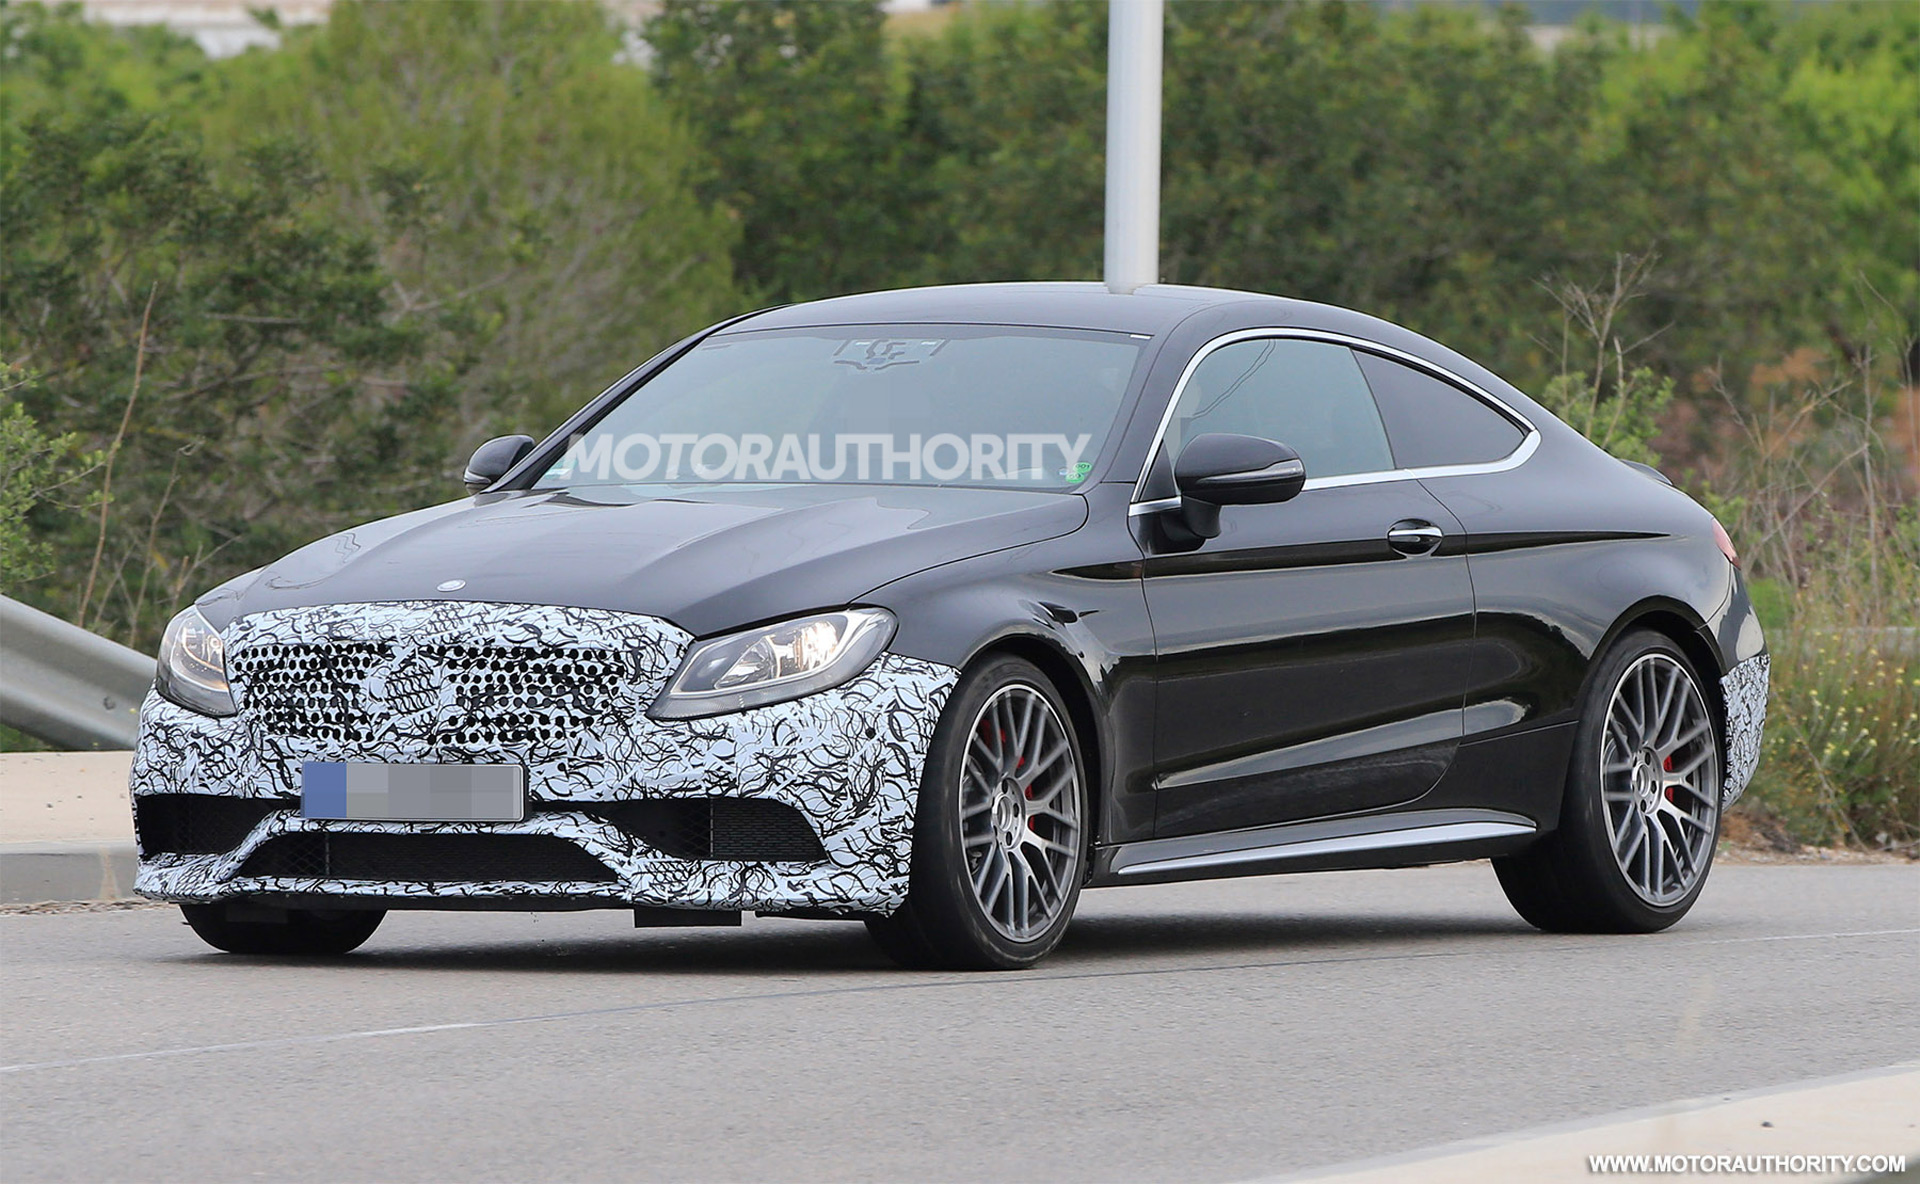 2020 mercedes amg c63 coupe spy shots autozaurus. Black Bedroom Furniture Sets. Home Design Ideas